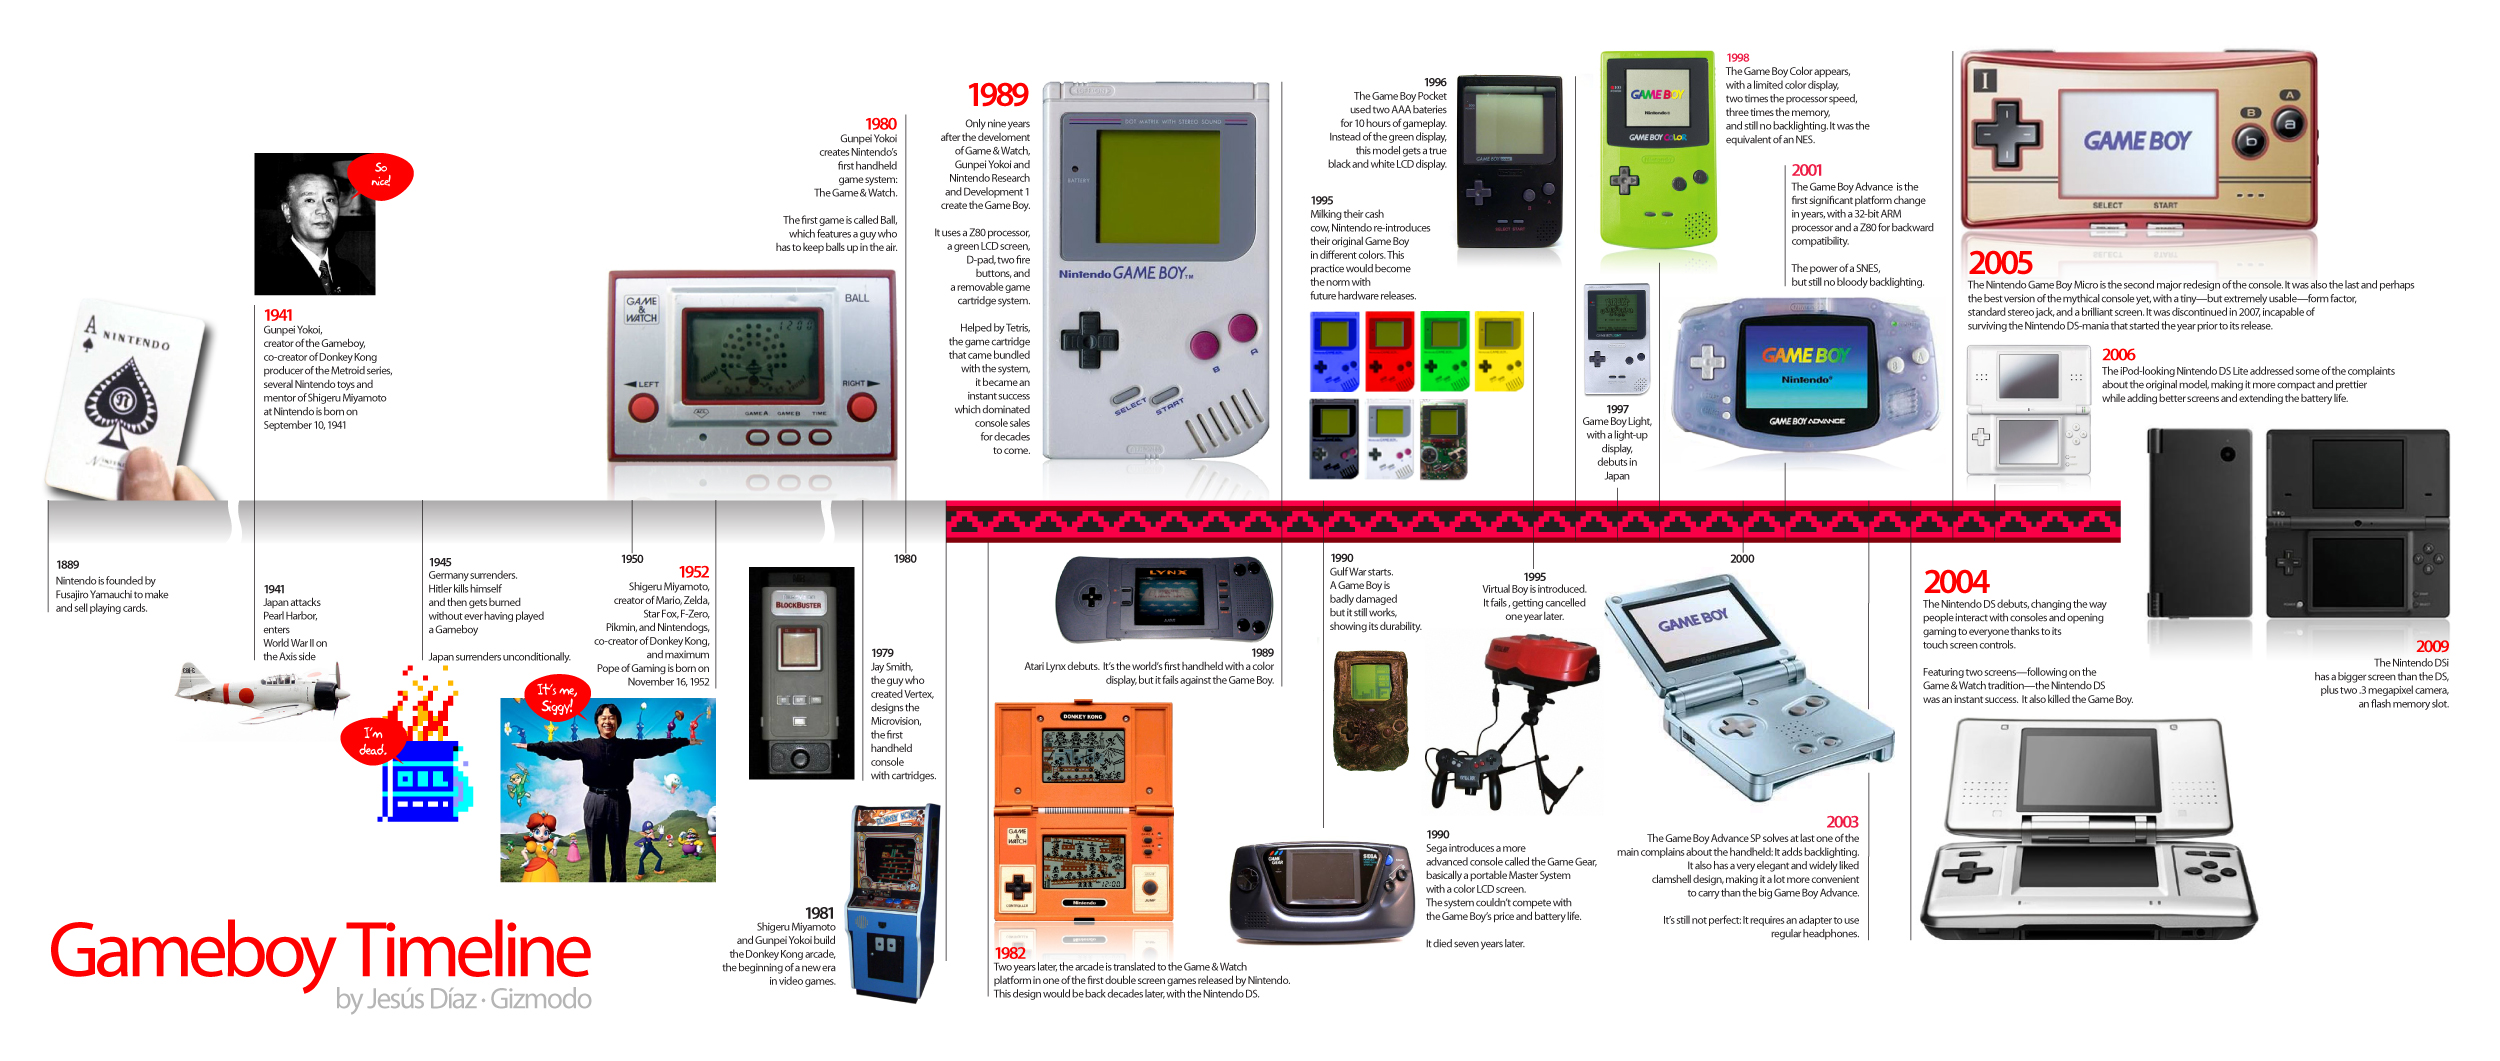 gameboy-timeline-hd21